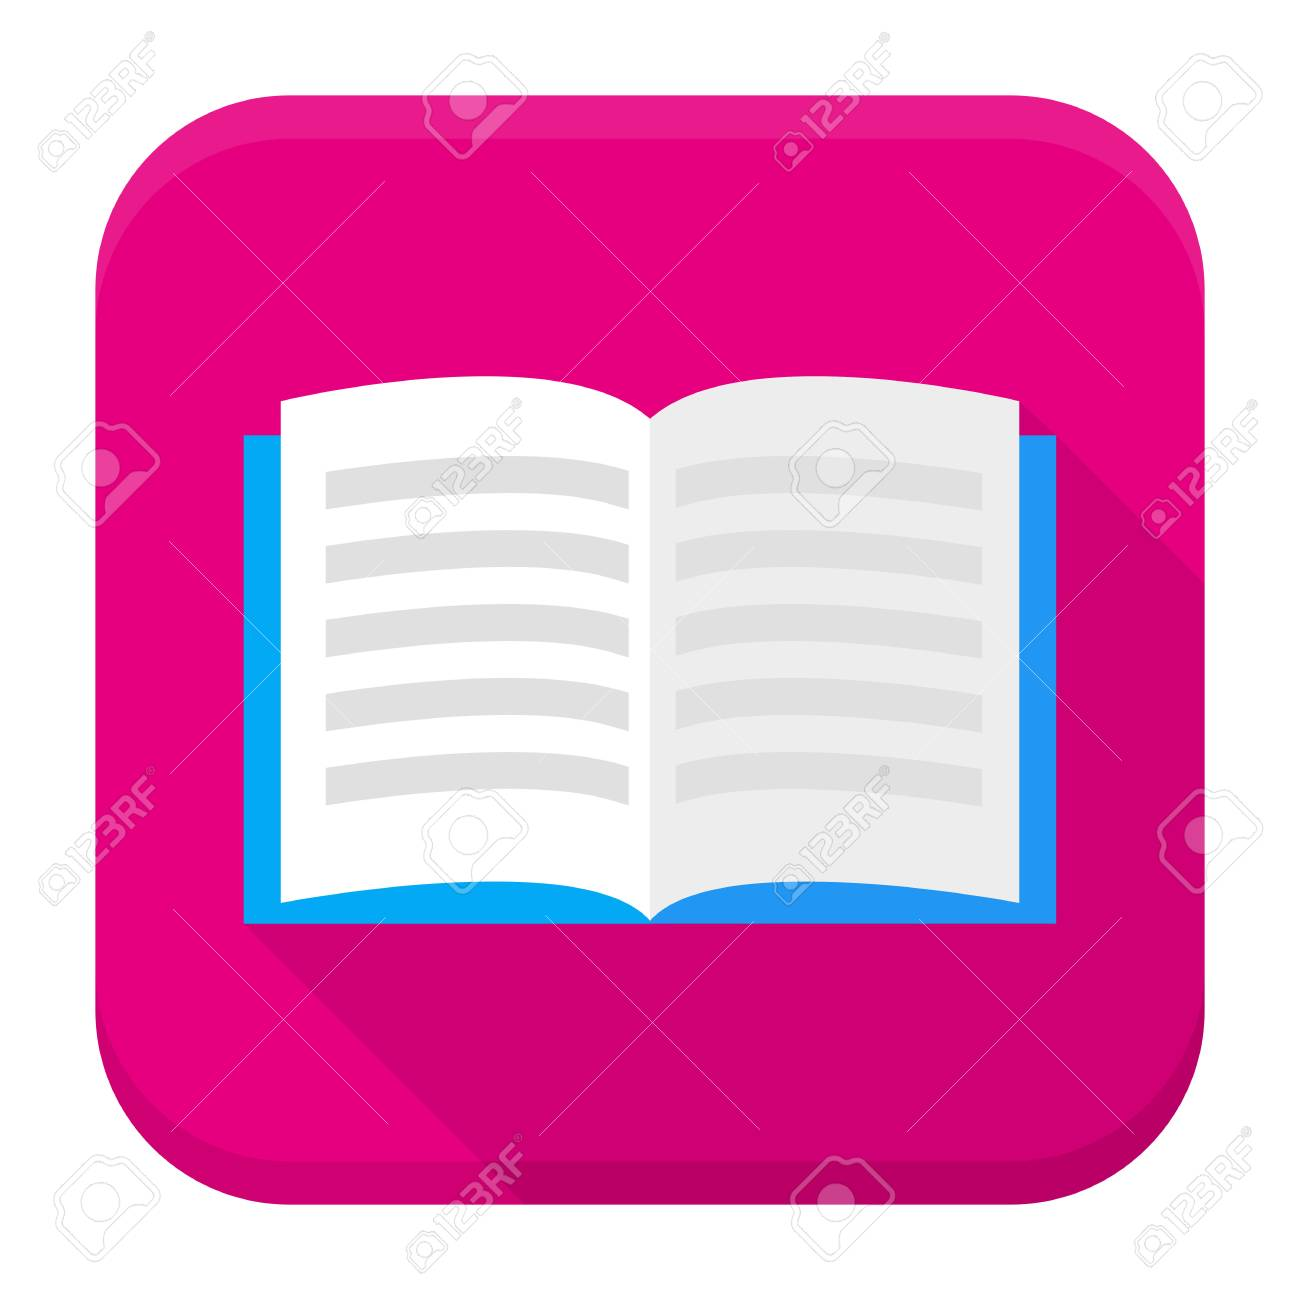 Flat style vector squared app icon  Open book app icon with long